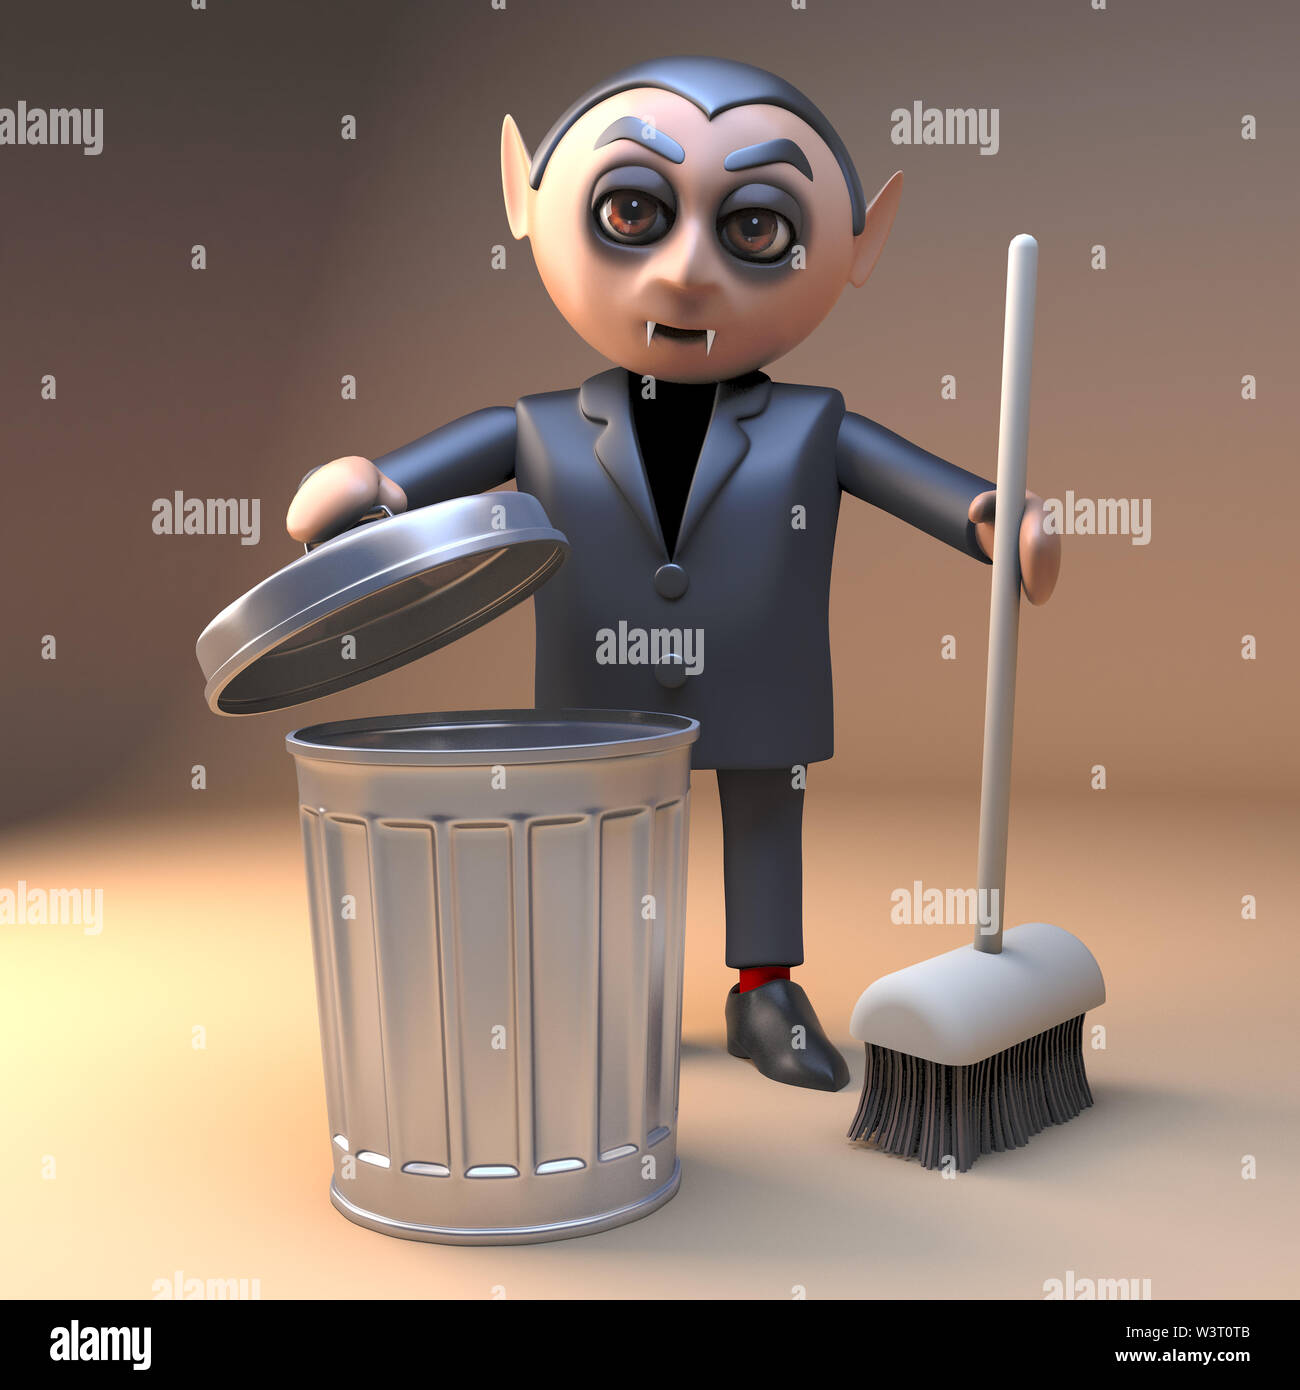 Clean living vampire dracule 3d character cleaning with a broom and rubbish bin, 3d illustration render - Stock Image